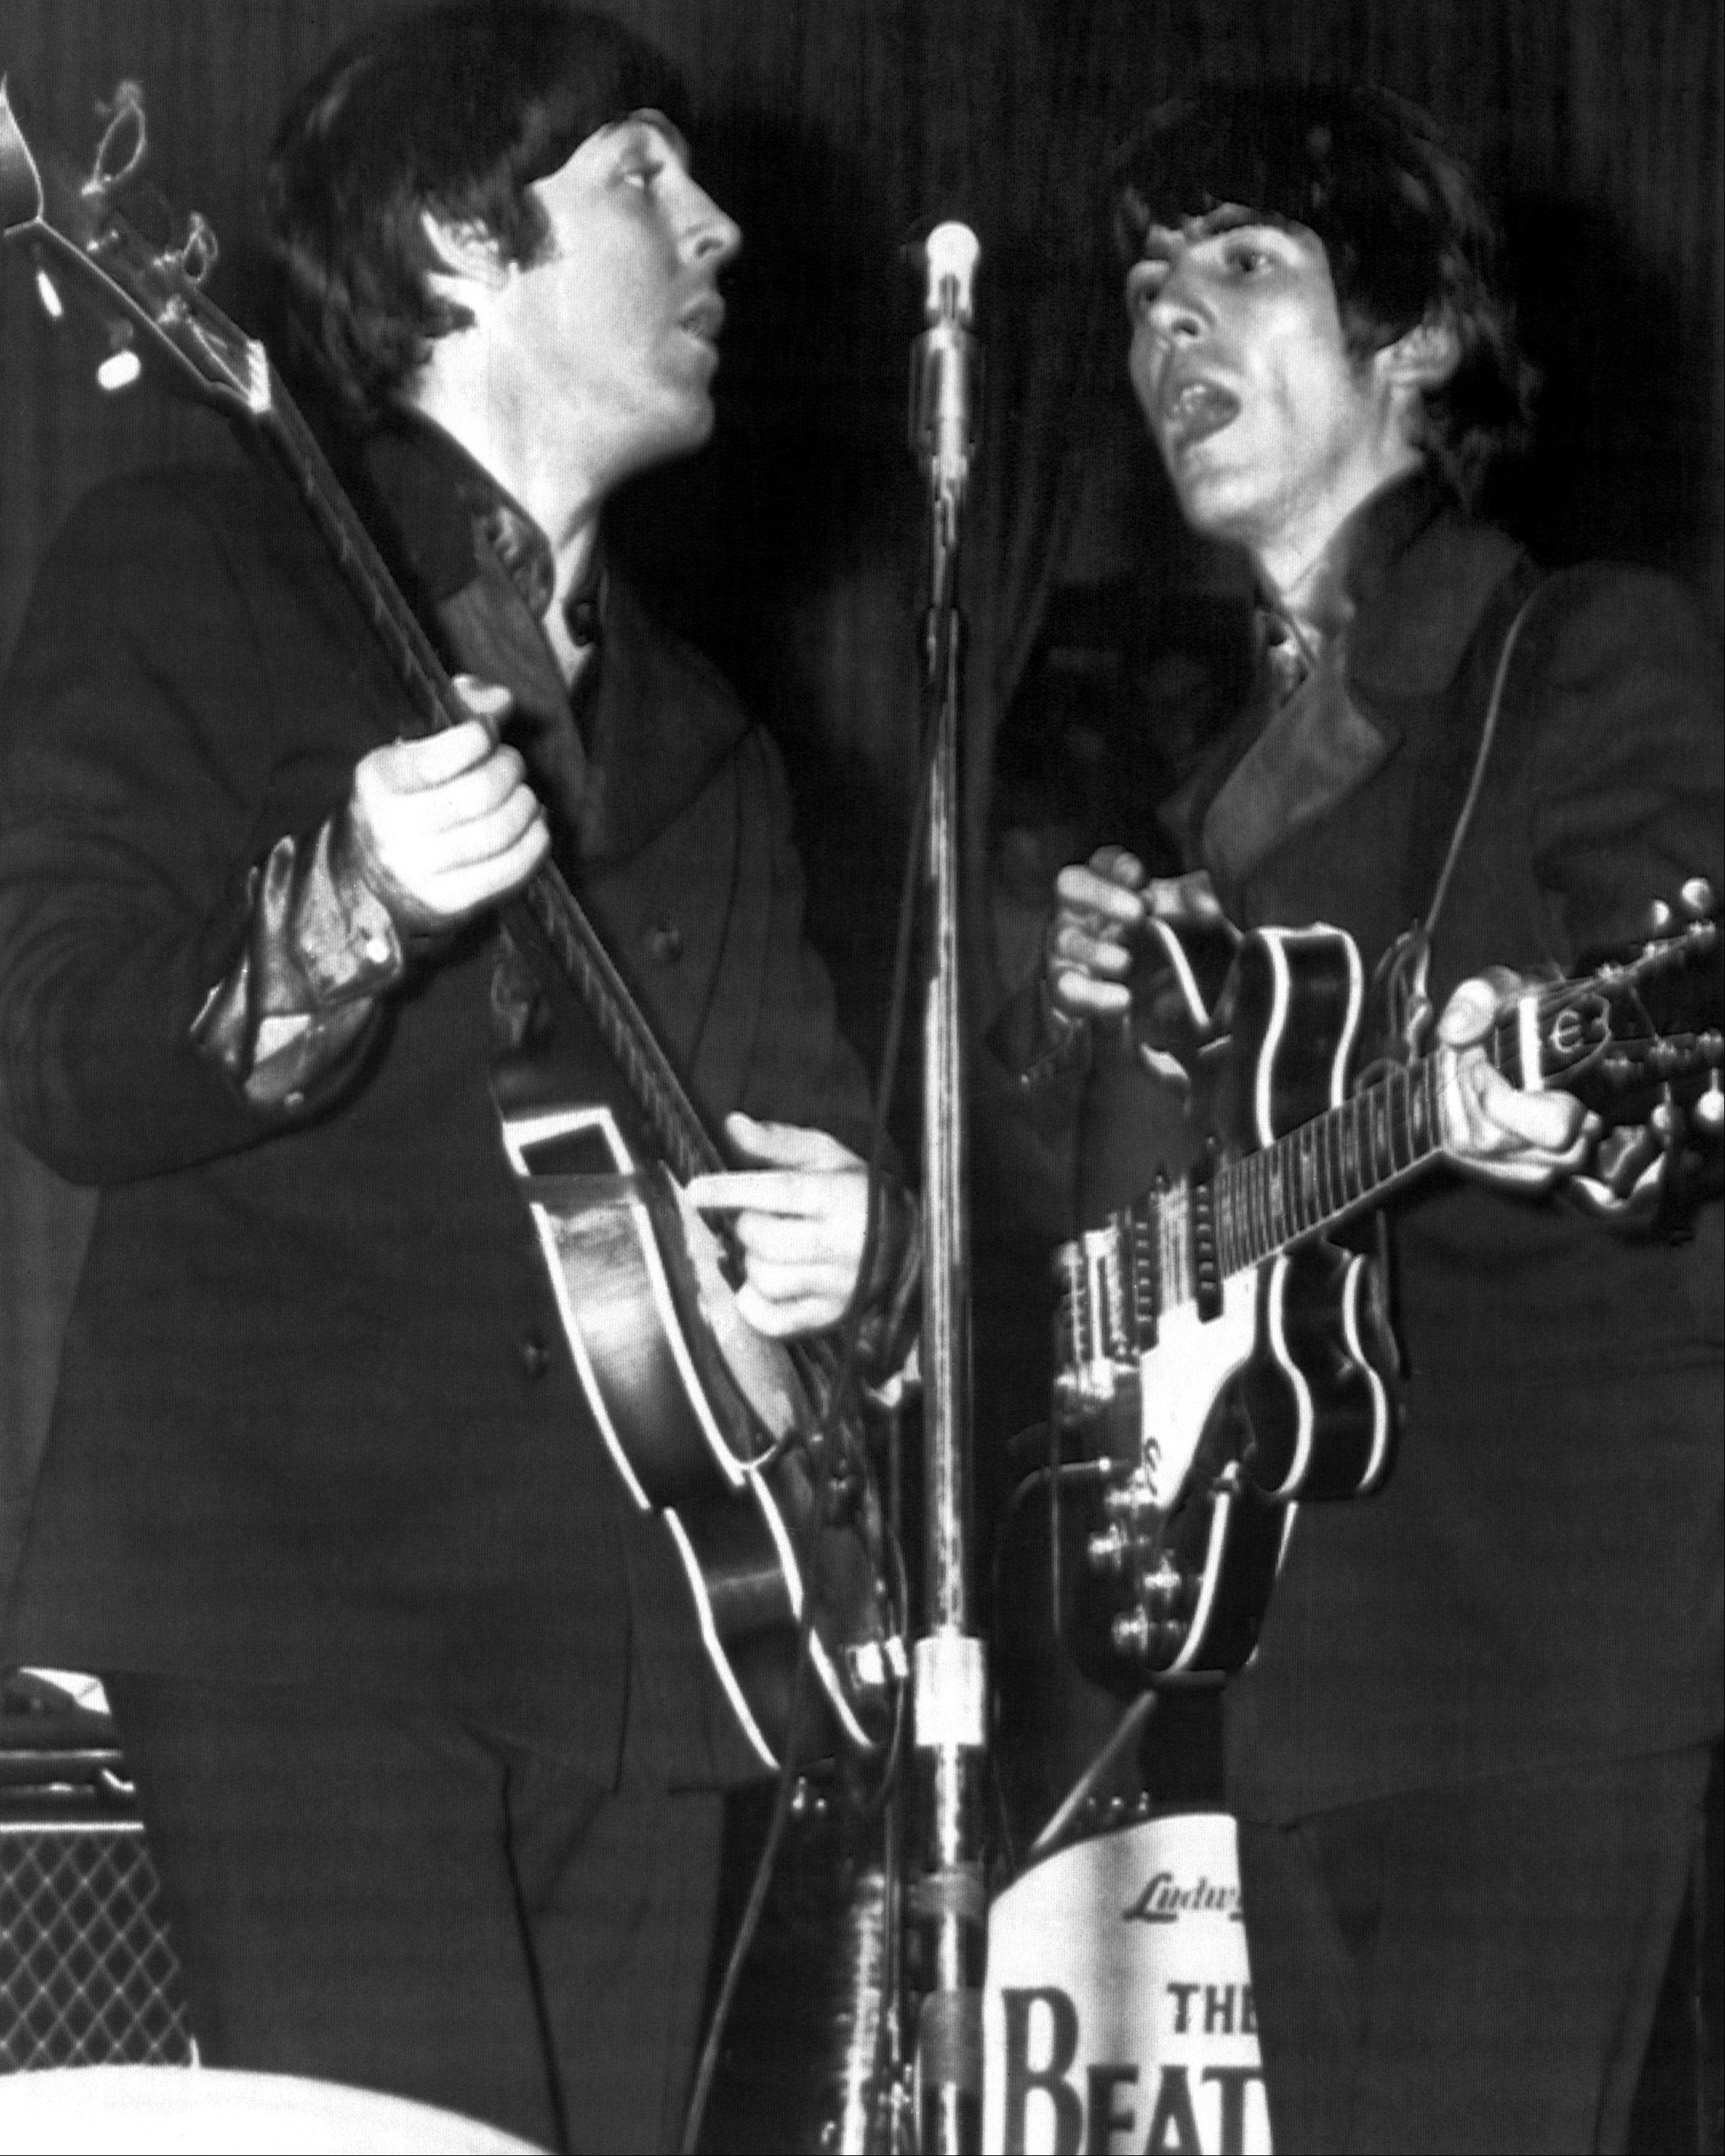 Paul McCartney, left, and George Harrison perform with The Beatles during a 1966 concert at Chicago's International Amphitheatre.